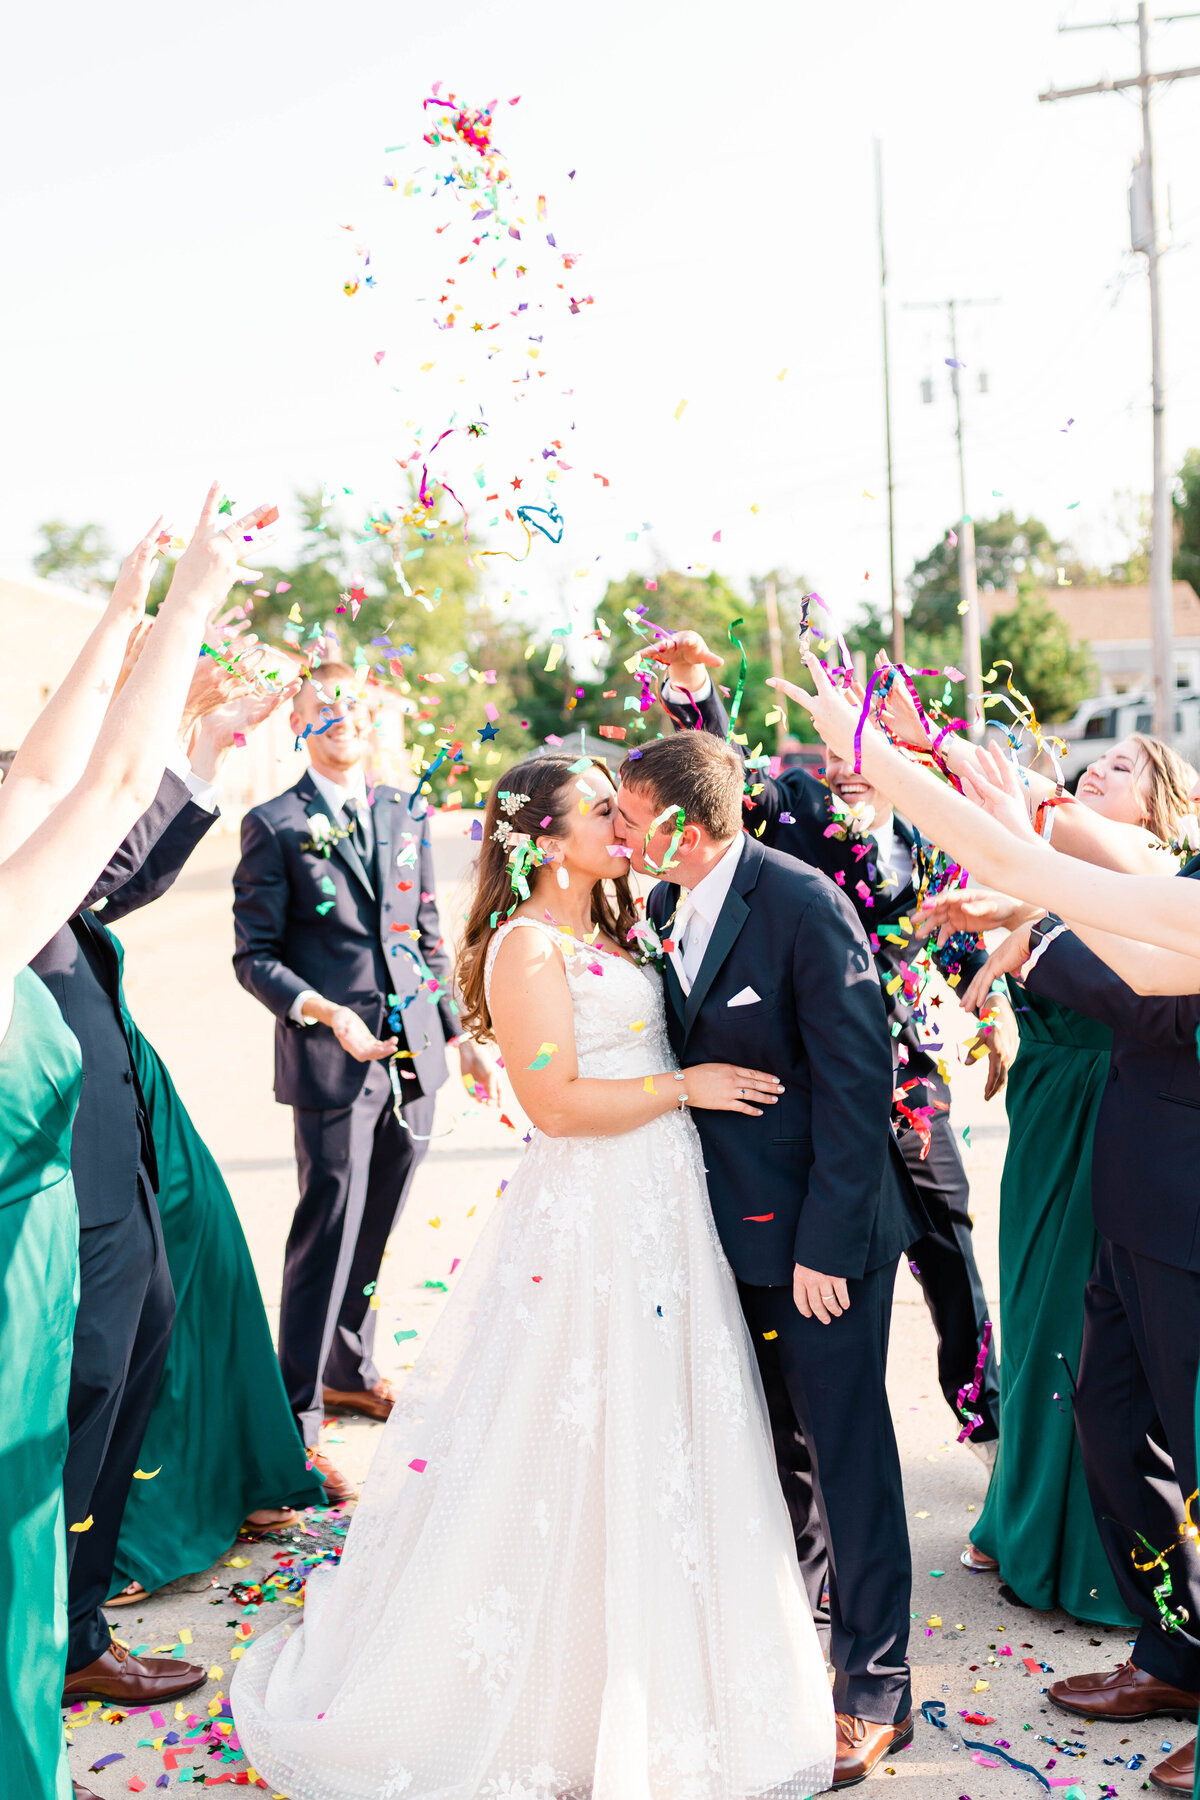 Confetti Wedding Pictures-Elle Taylor Photography